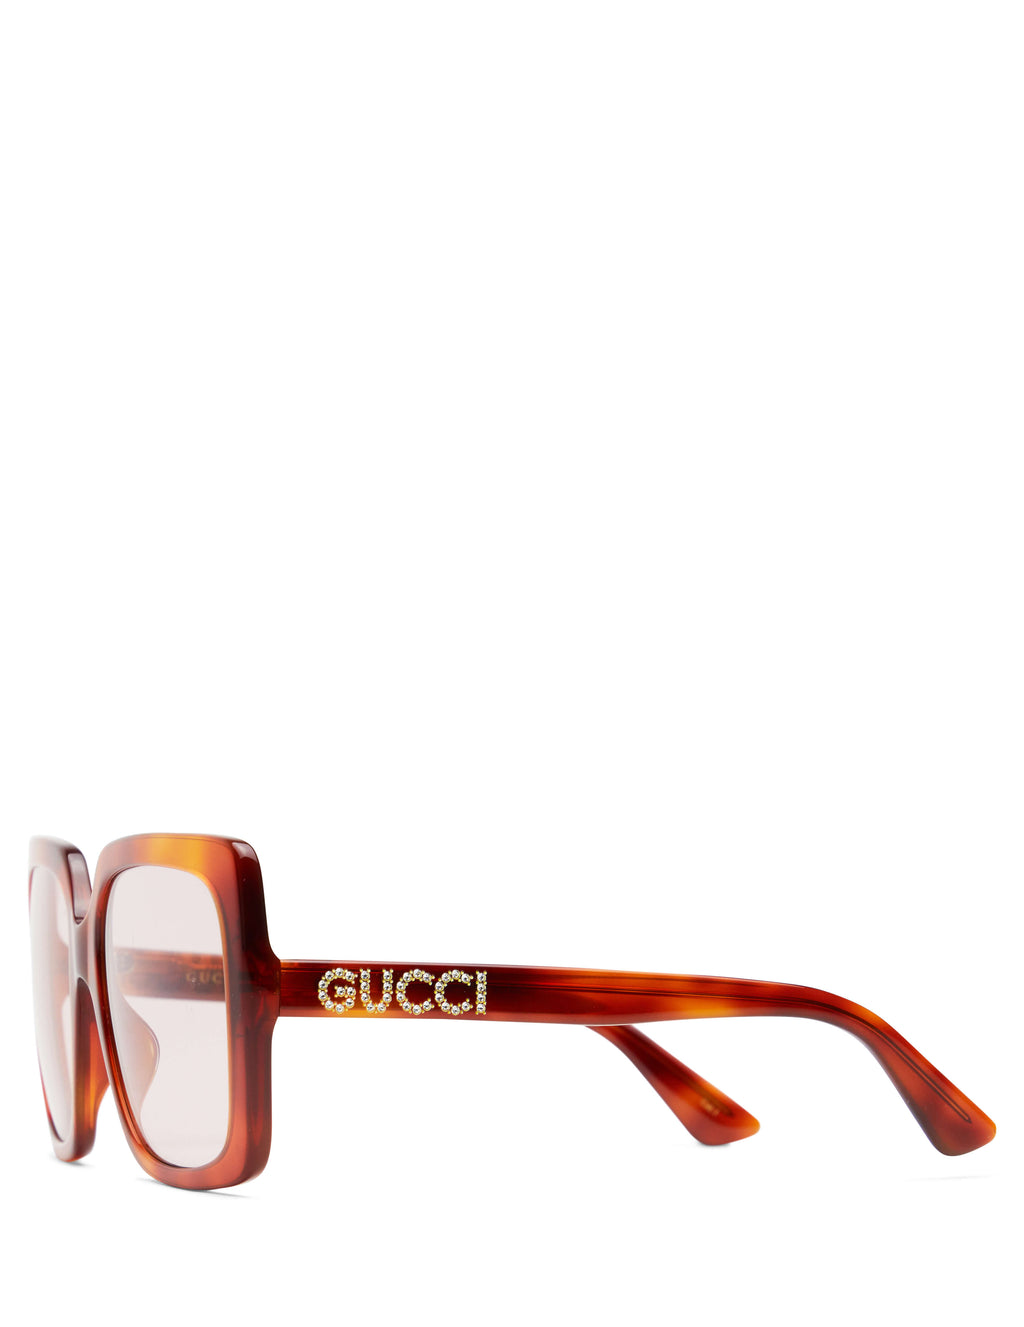 bb226ef03ad Gucci Eyewear Women s Giulio Fashion Brown Rectangular Frame Sunglasses  GG0418S005